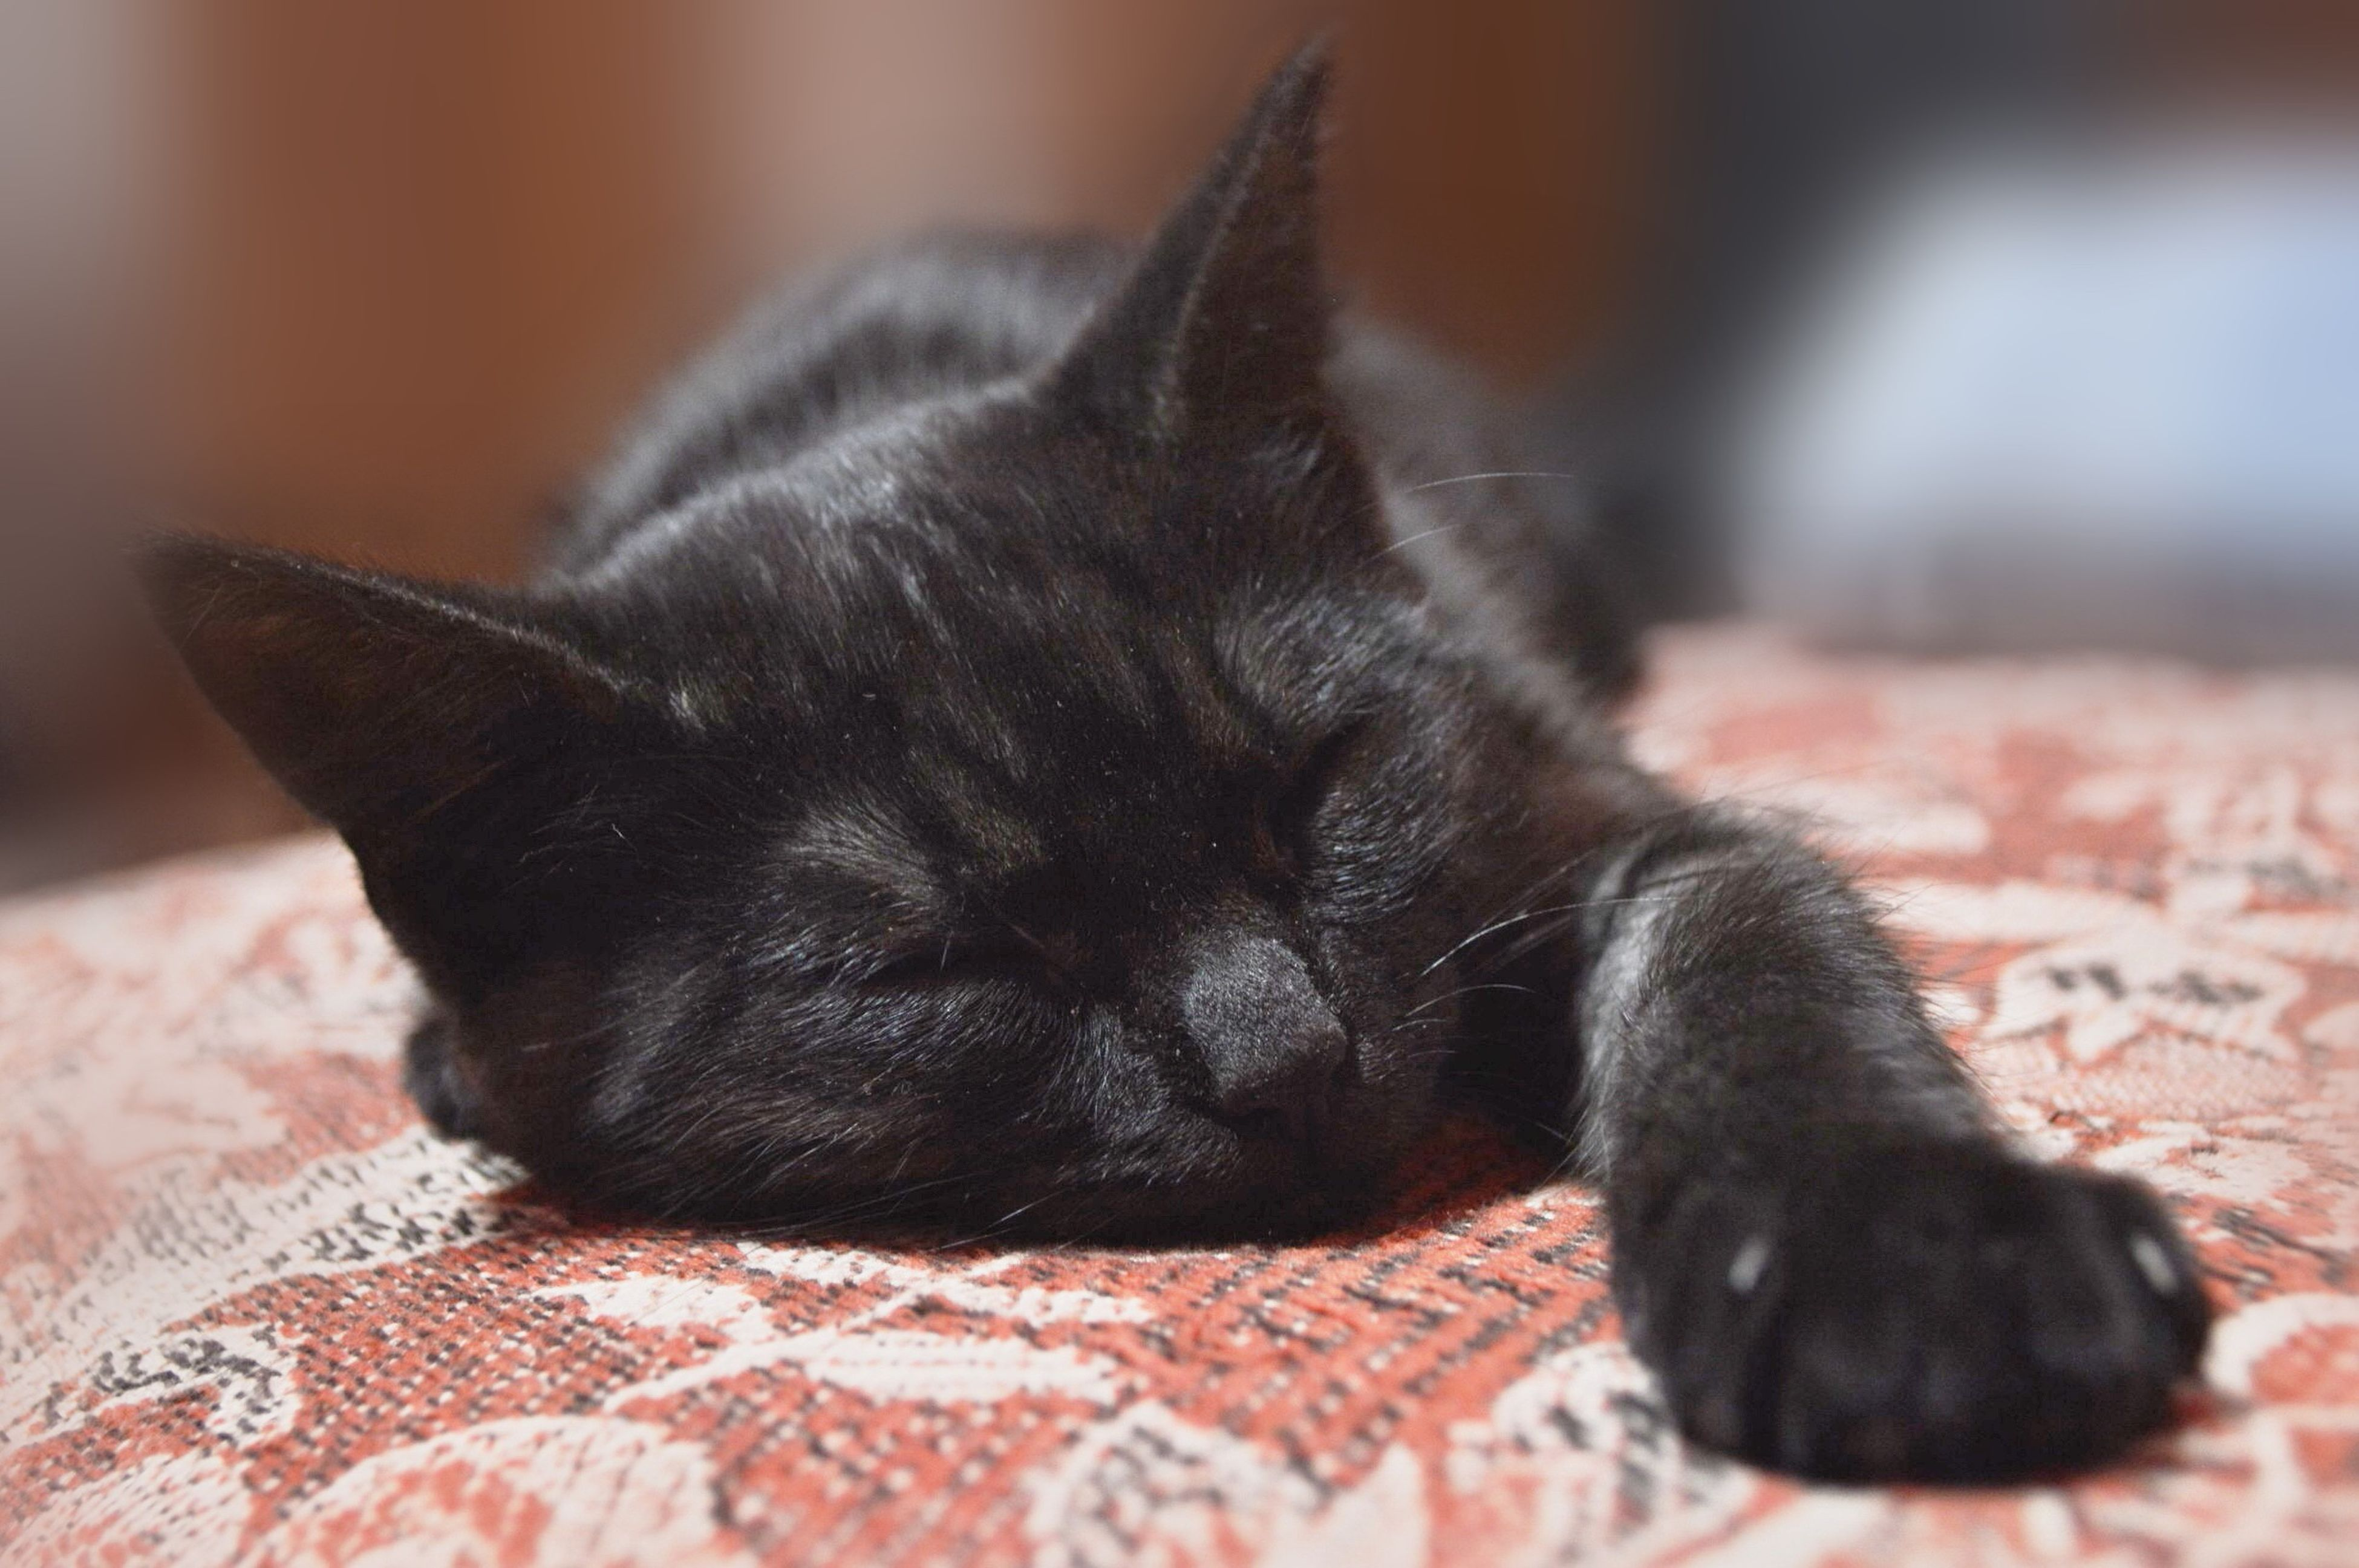 animal themes, pets, one animal, domestic animals, mammal, relaxation, close-up, indoors, focus on foreground, resting, domestic cat, lying down, black color, animal head, feline, whisker, selective focus, cat, sleeping, relaxing